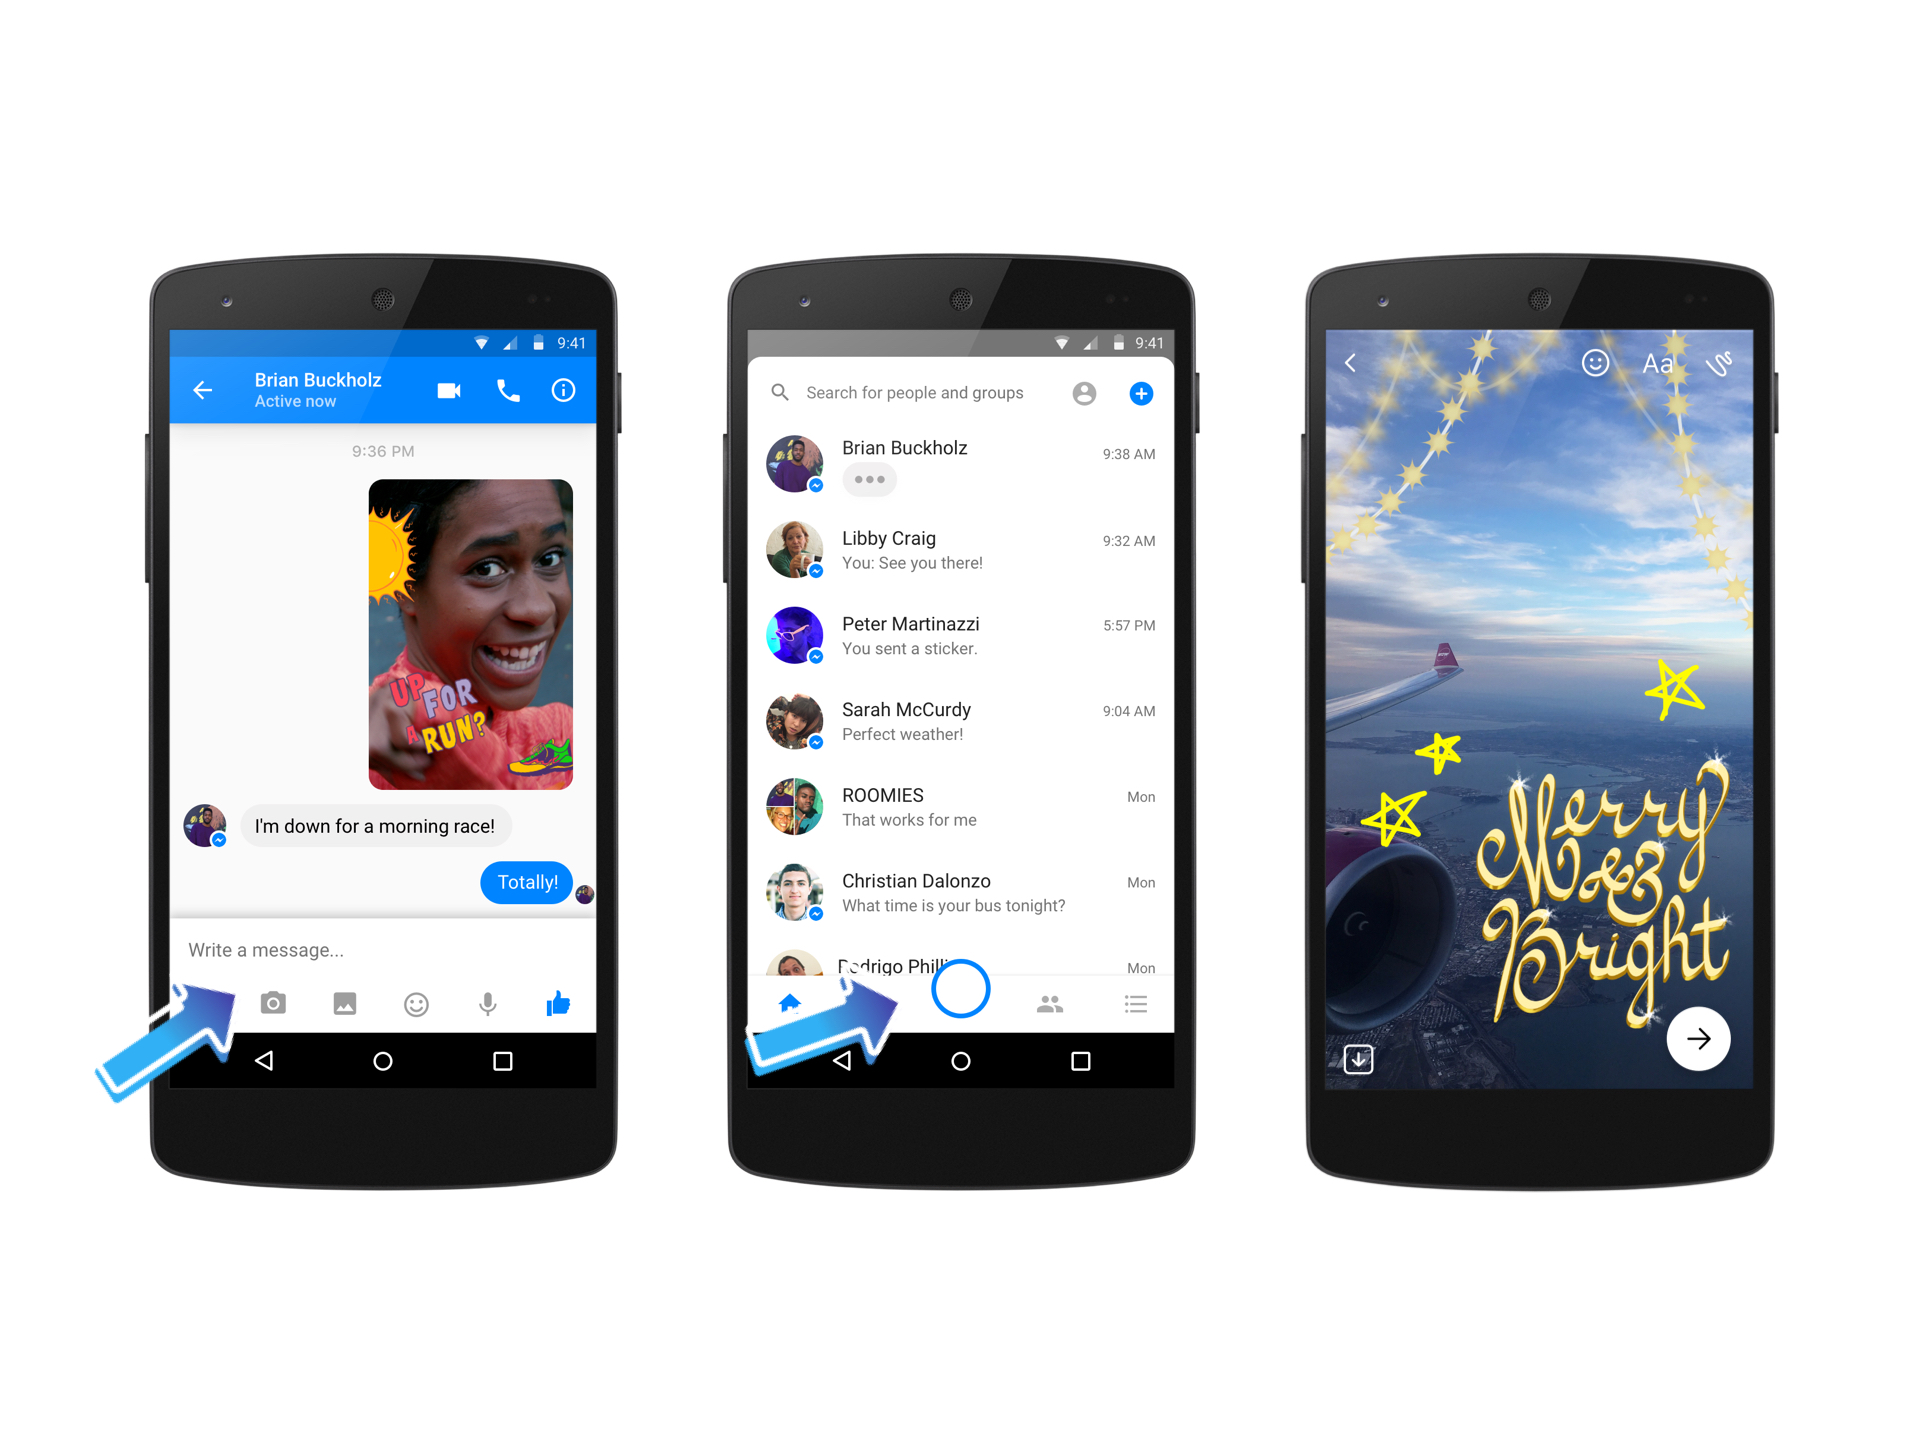 Facebook Messenger announces the global launch of a new powerful native camera